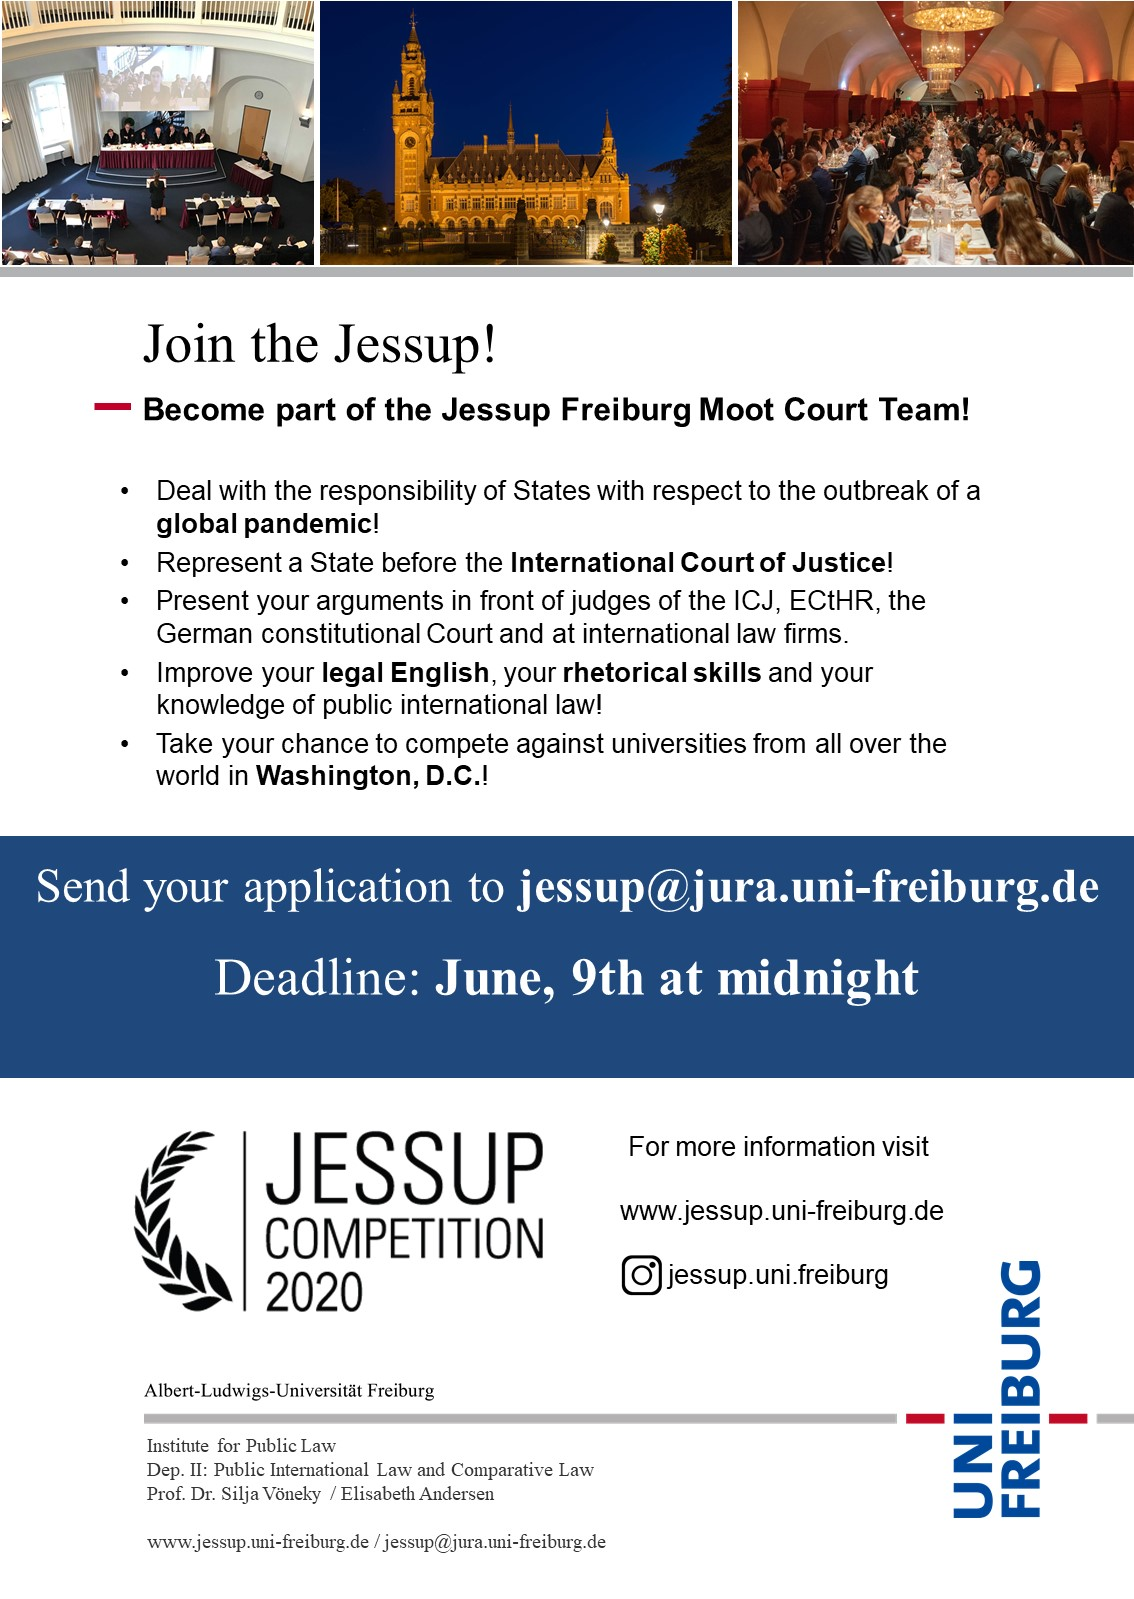 Join the Jessup